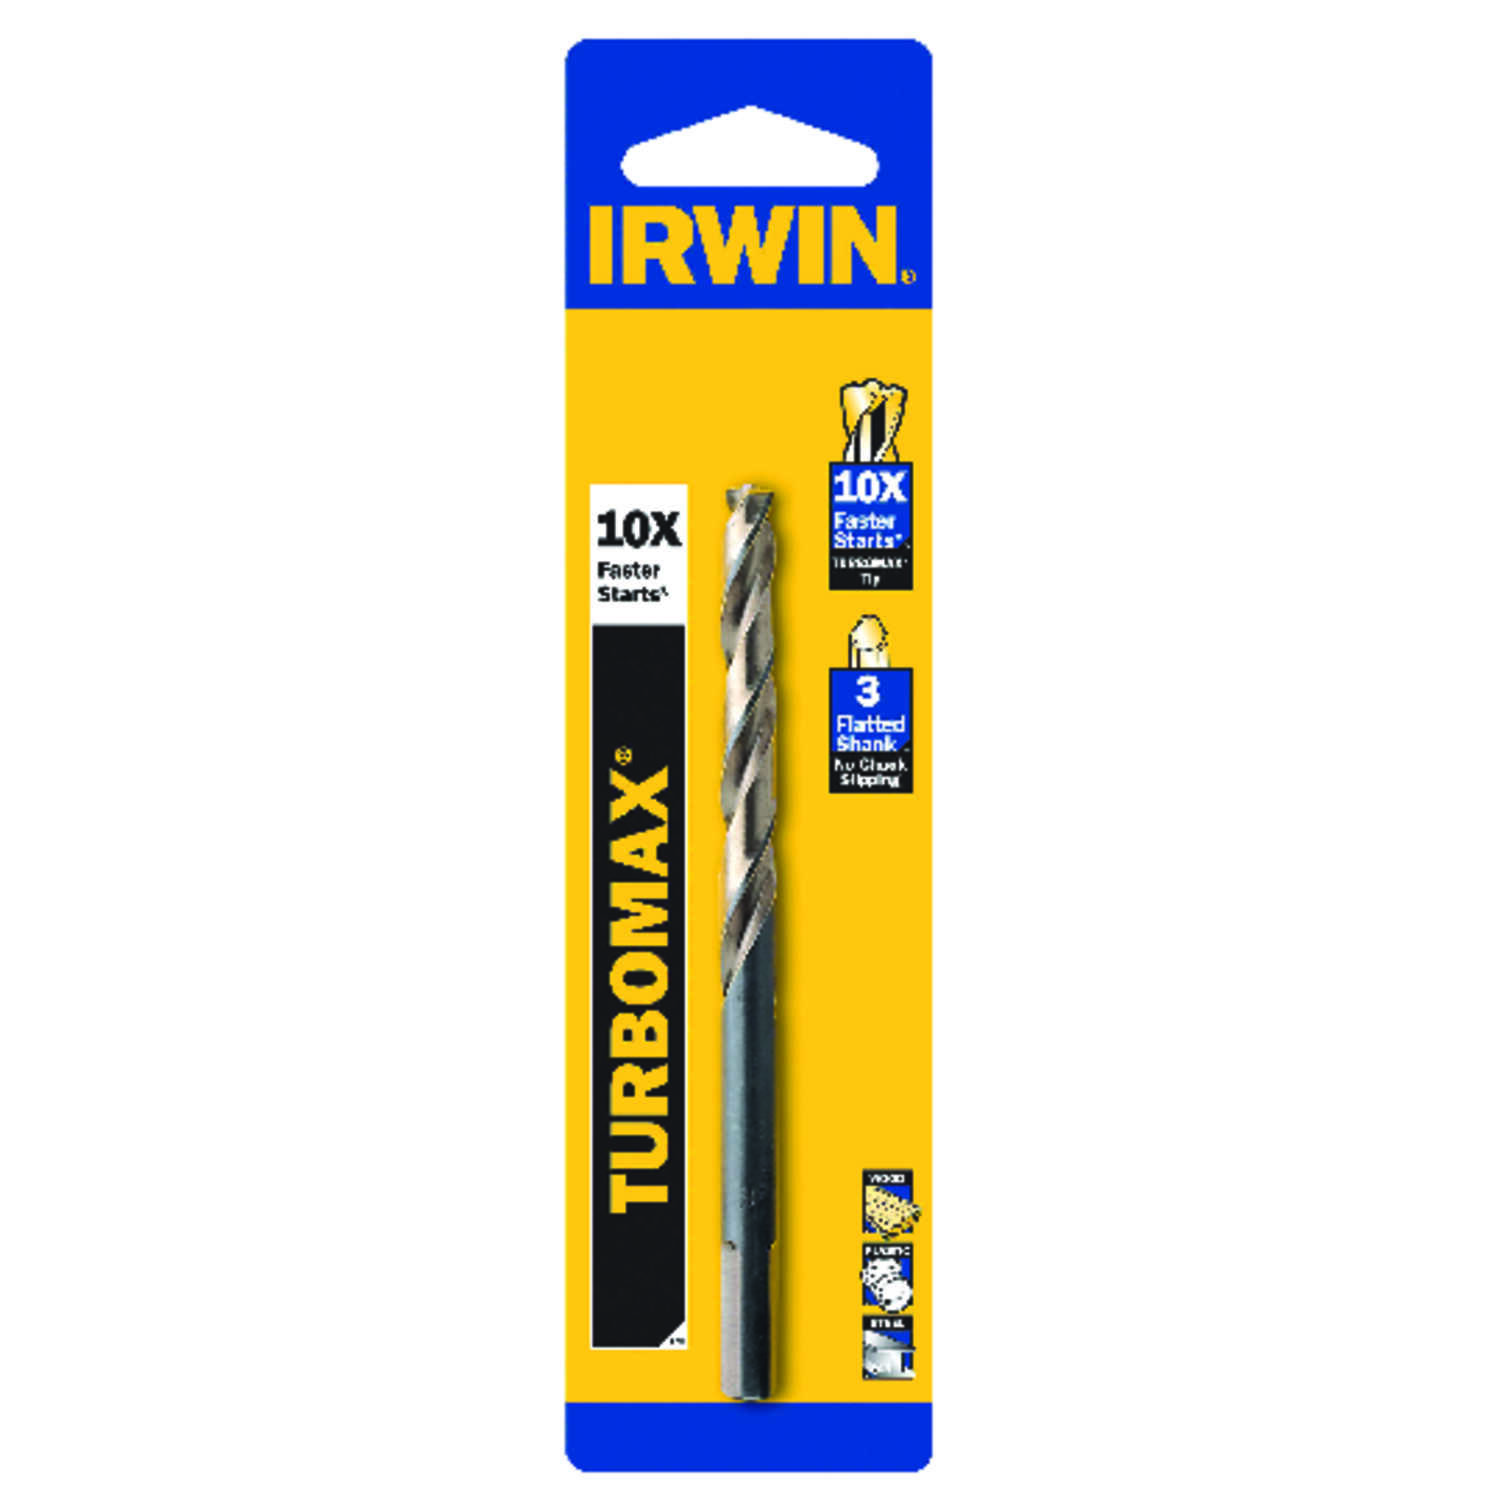 Irwin  Turbomax  5/16 in. Dia. x 4-1/2  L High Speed Steel  Drill Bit  Straight Shank  1 pc.